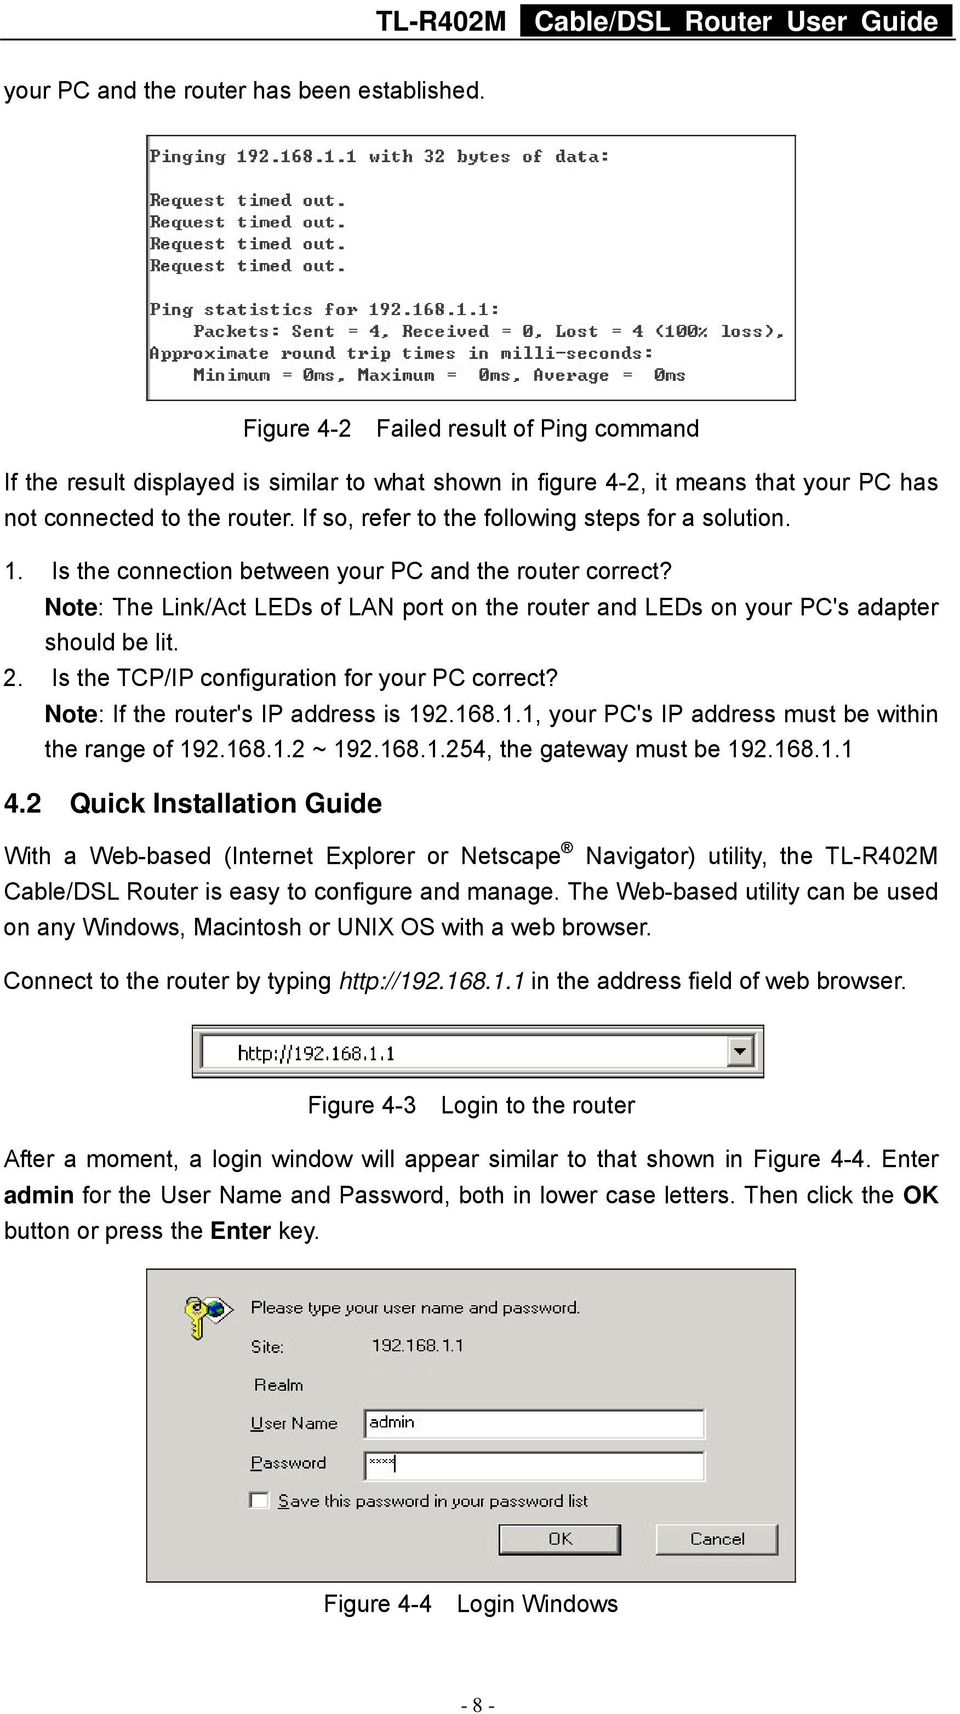 If so, refer to the following steps for a solution. 1. Is the connection between your PC and the router correct?